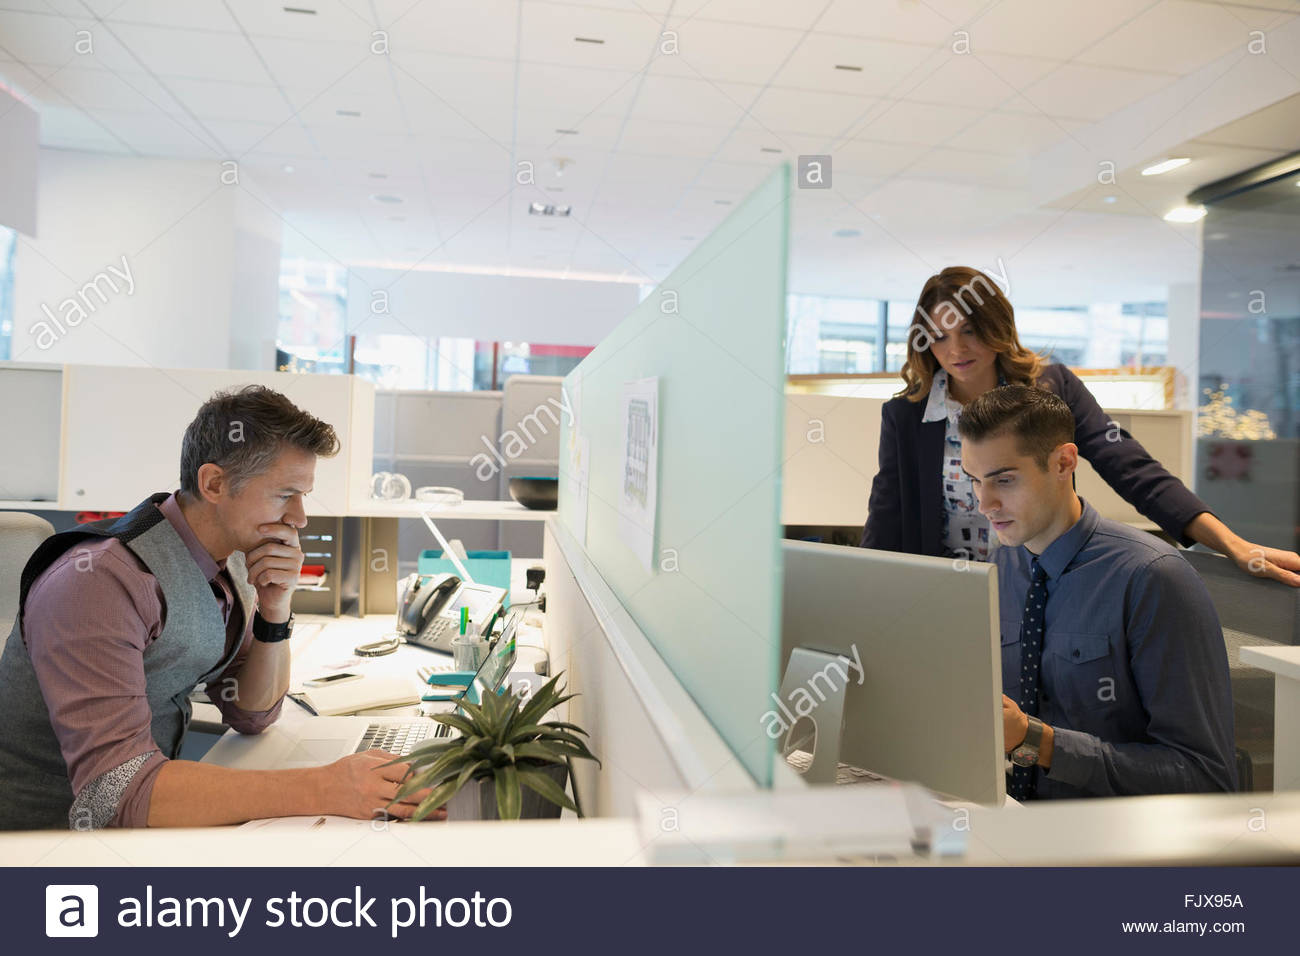 Les gens d'affaires travaillant à logettes in office Photo Stock